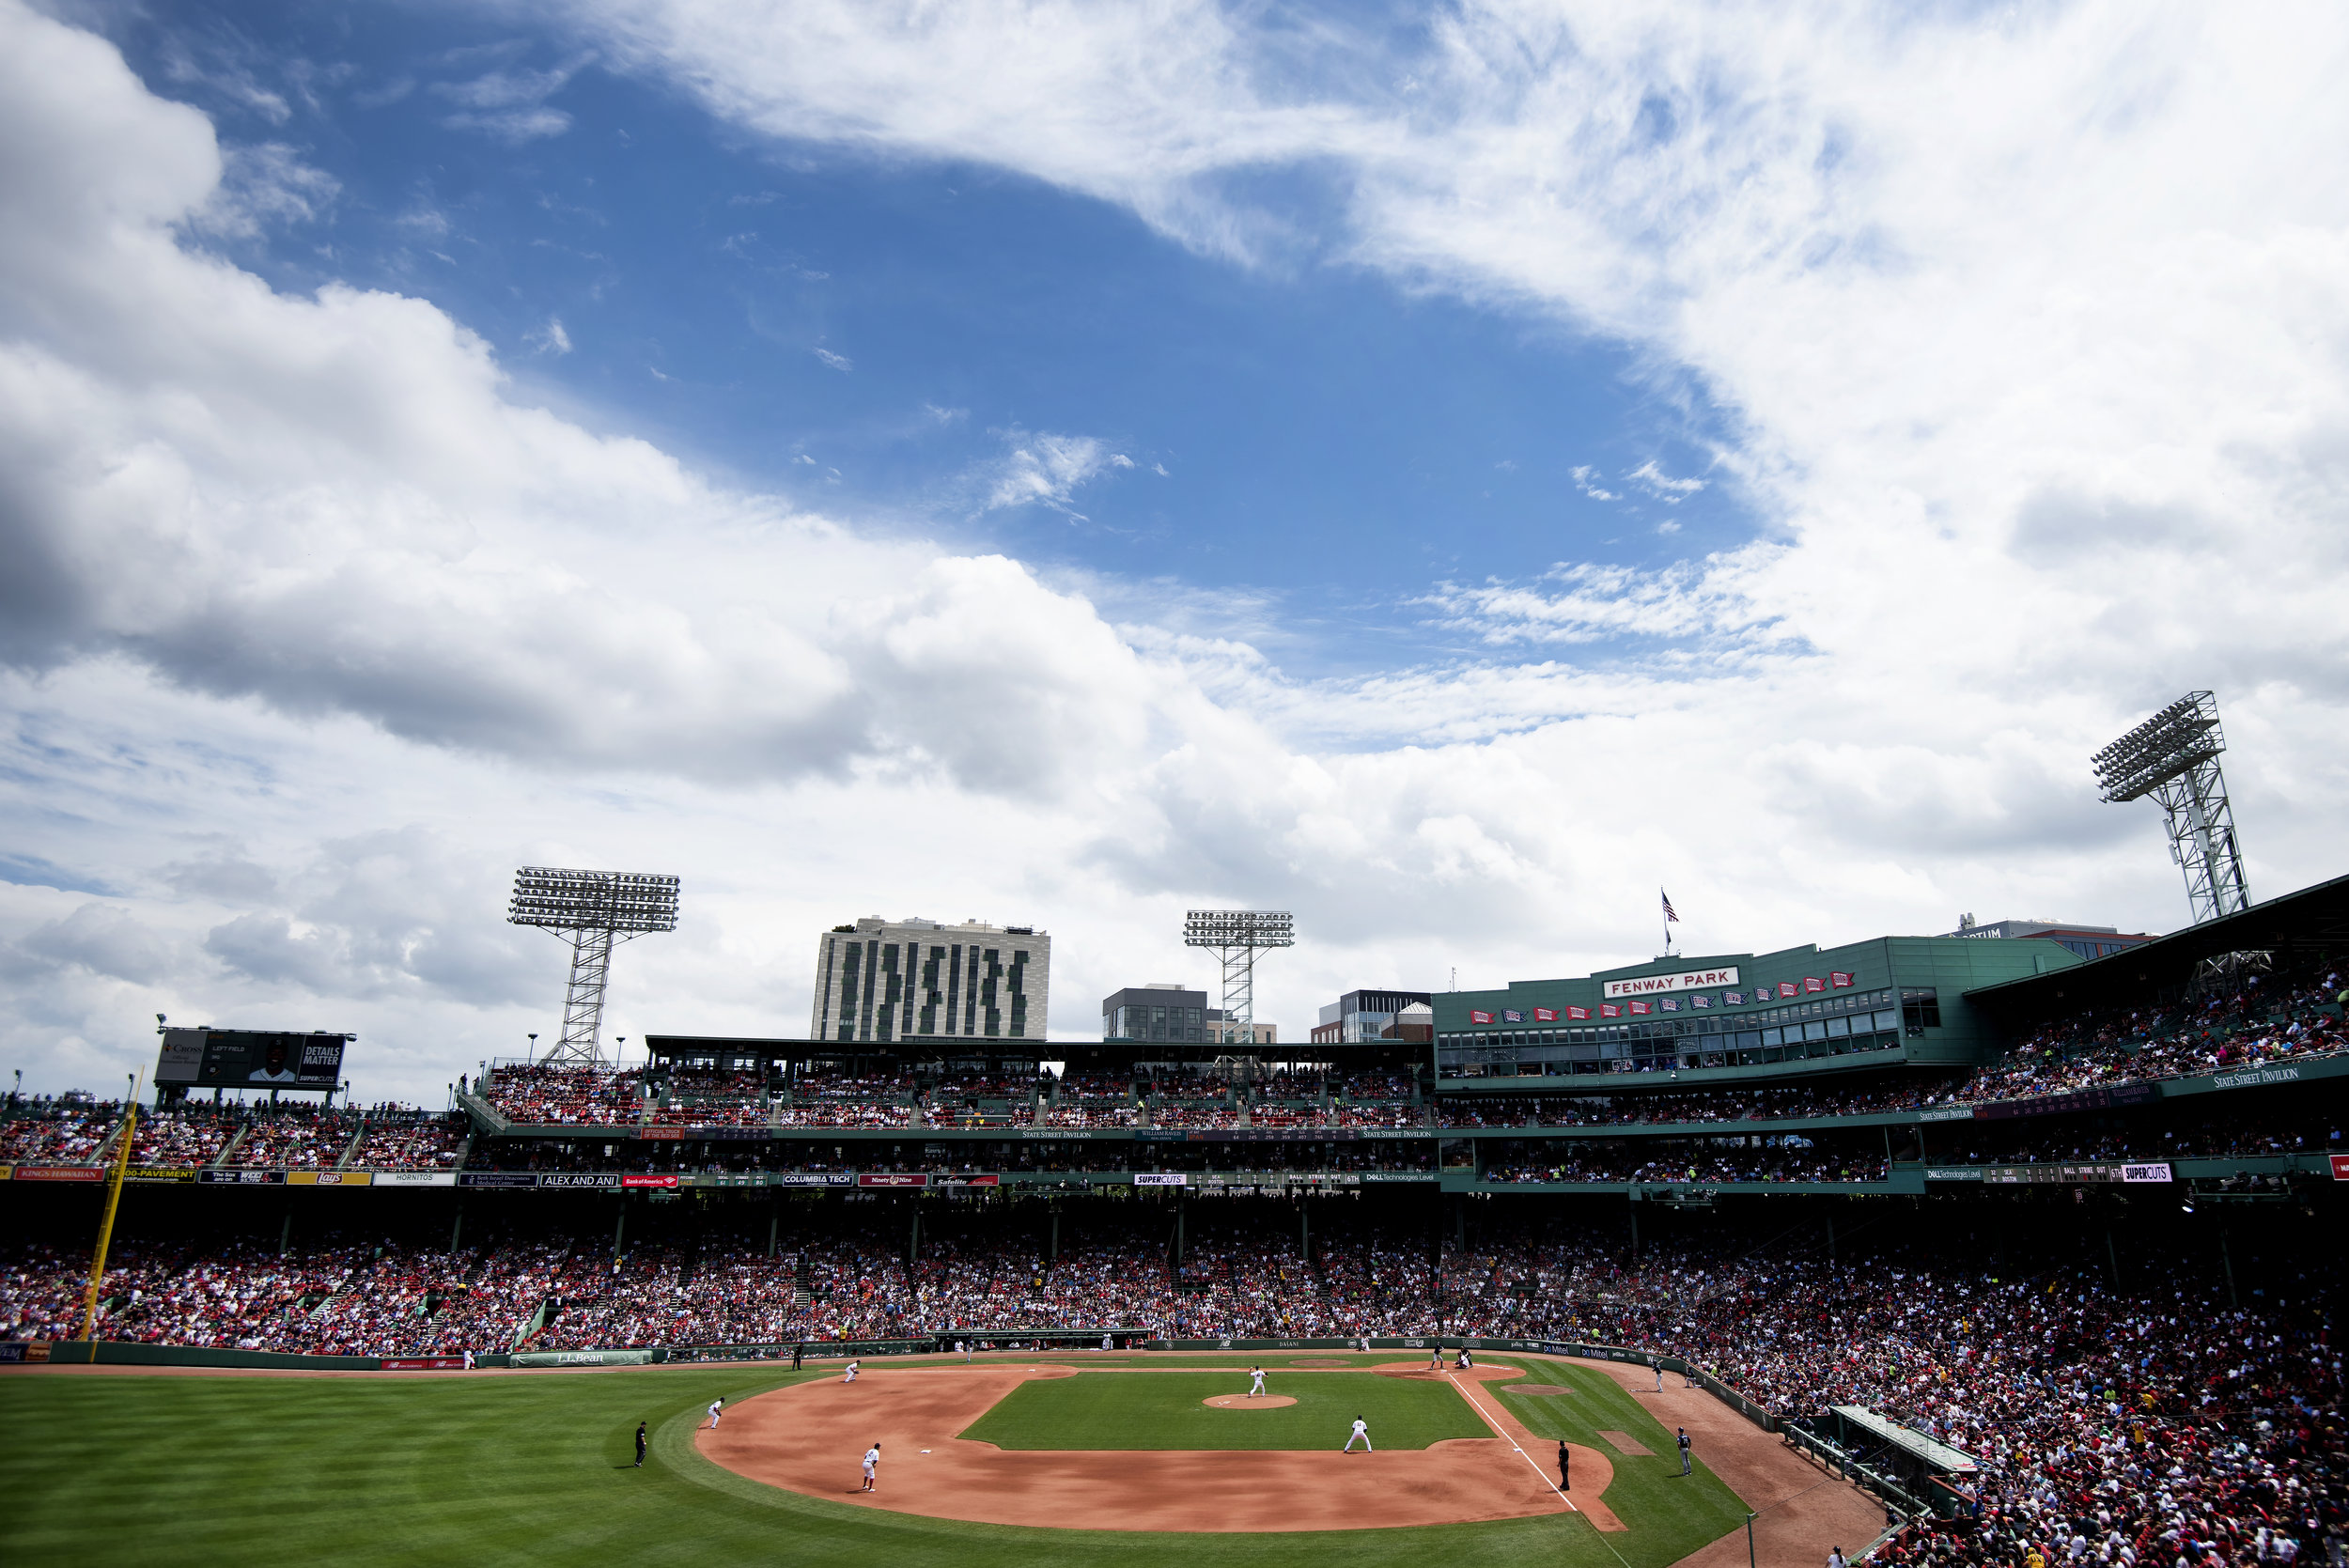 Fenway Park as viewed from the top of the Green Monster during the game against Seattle in Boston, Massachusetts on Sunday, June 24, 2018.